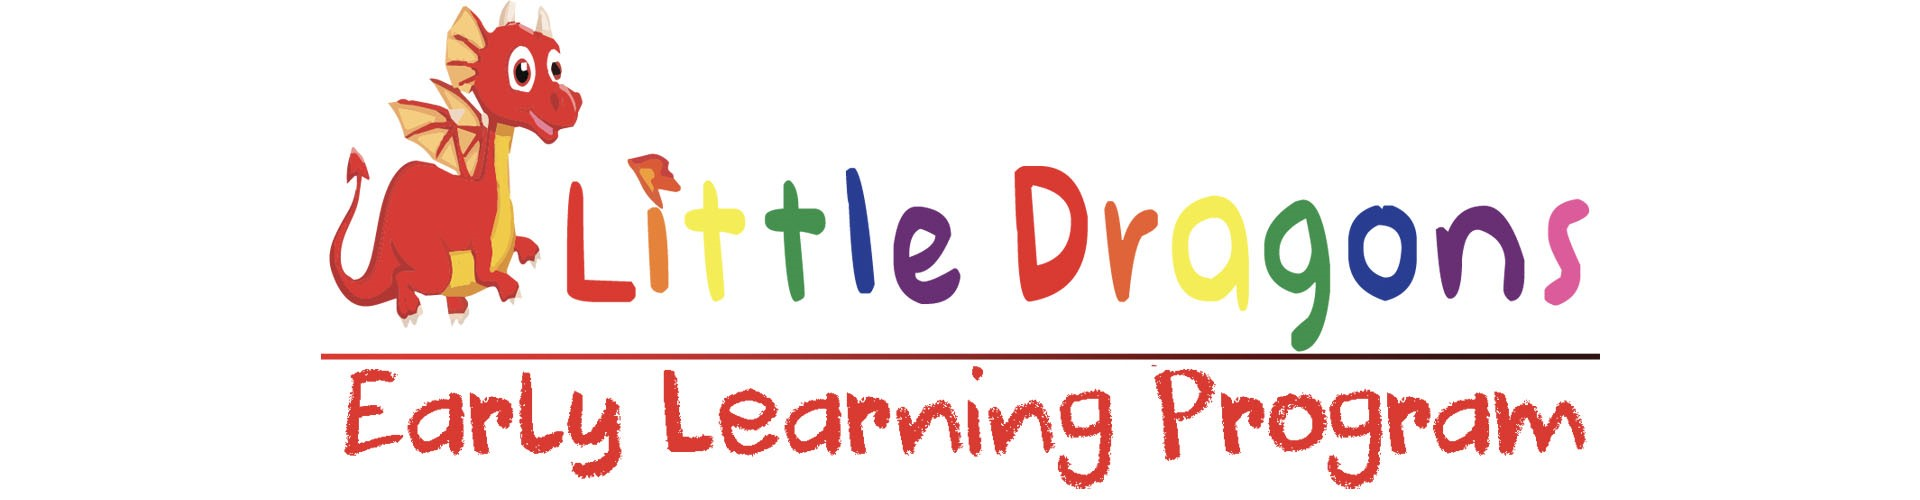 Little Dragons Early Learning Program Logo